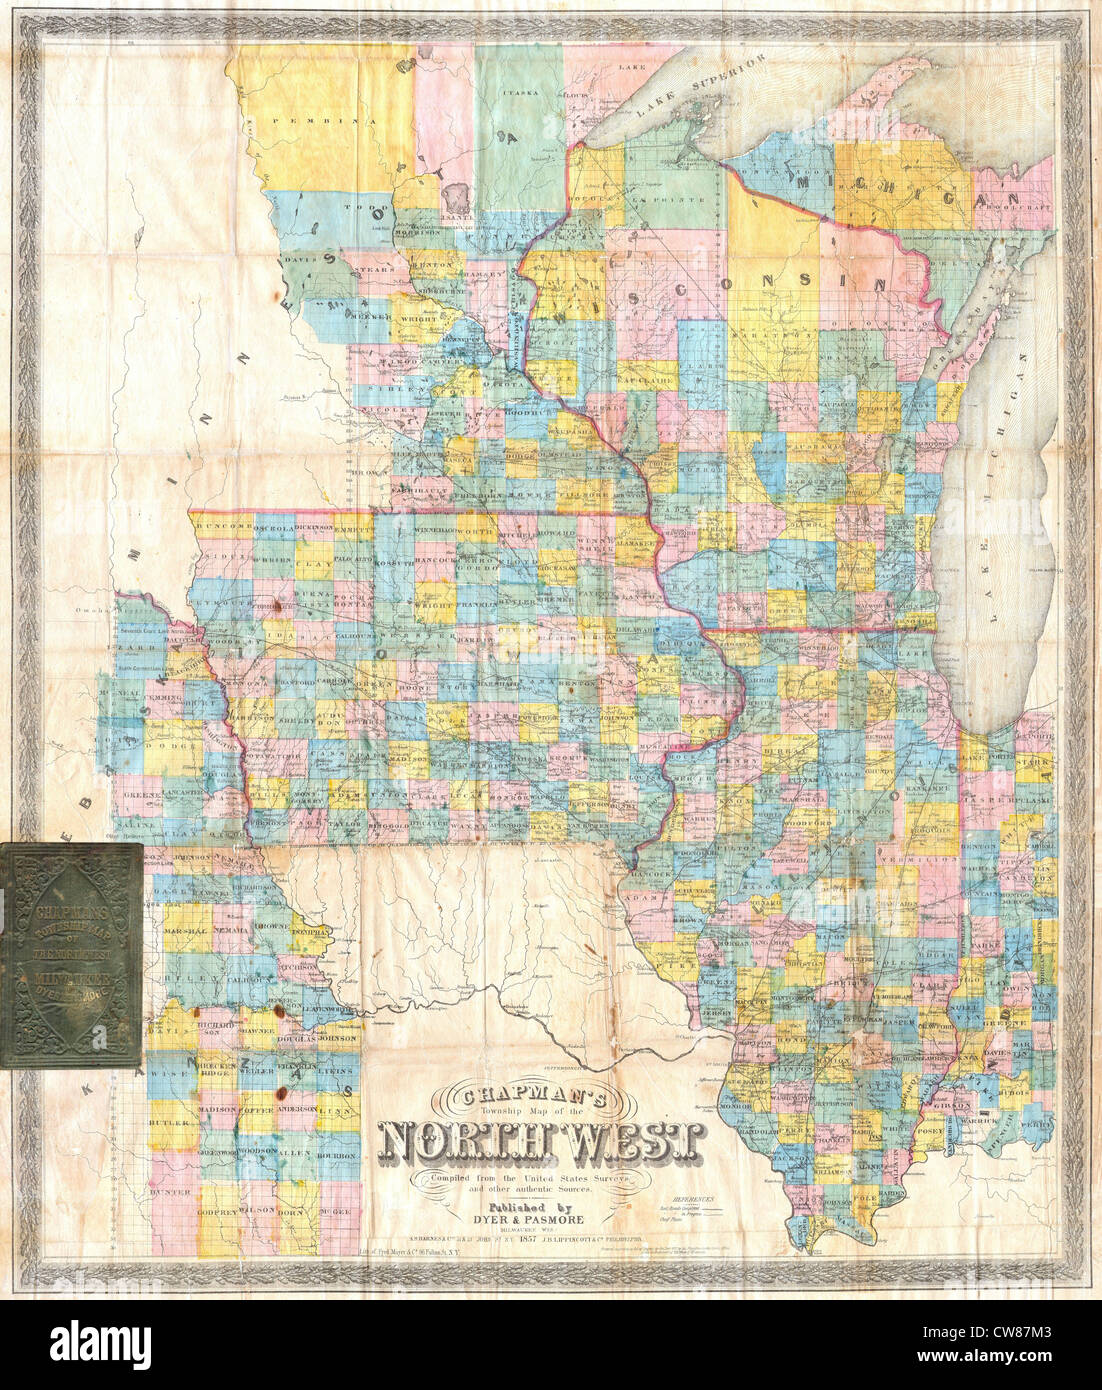 Map Of Illinois And Iowa 1857 Chapman Pocket Map of the North West ( Illinois, Wisconsin